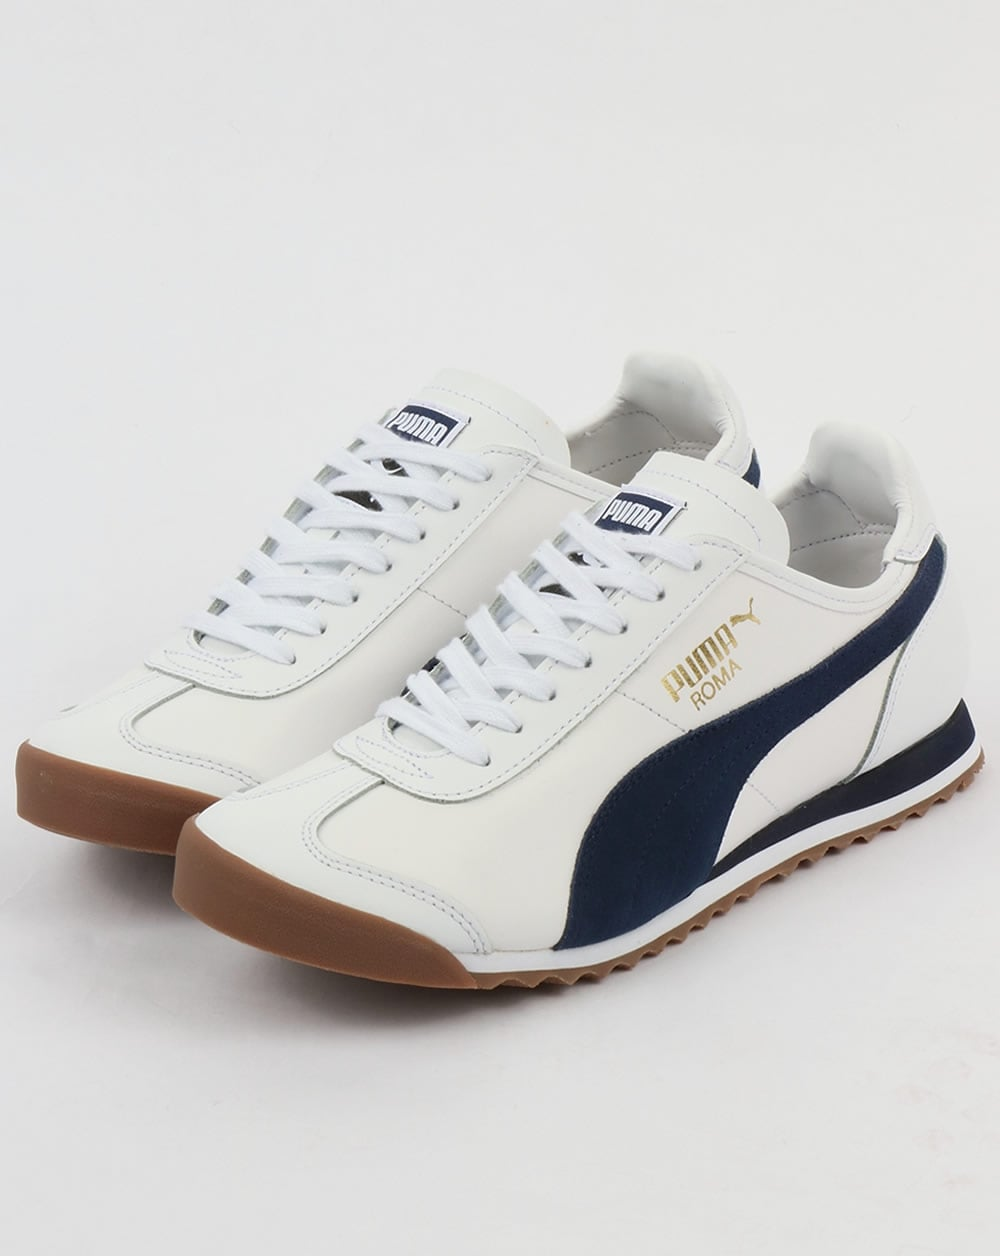 8f4fd4a6dd8b3c Puma Roma Leather 80s Trainers White Navy